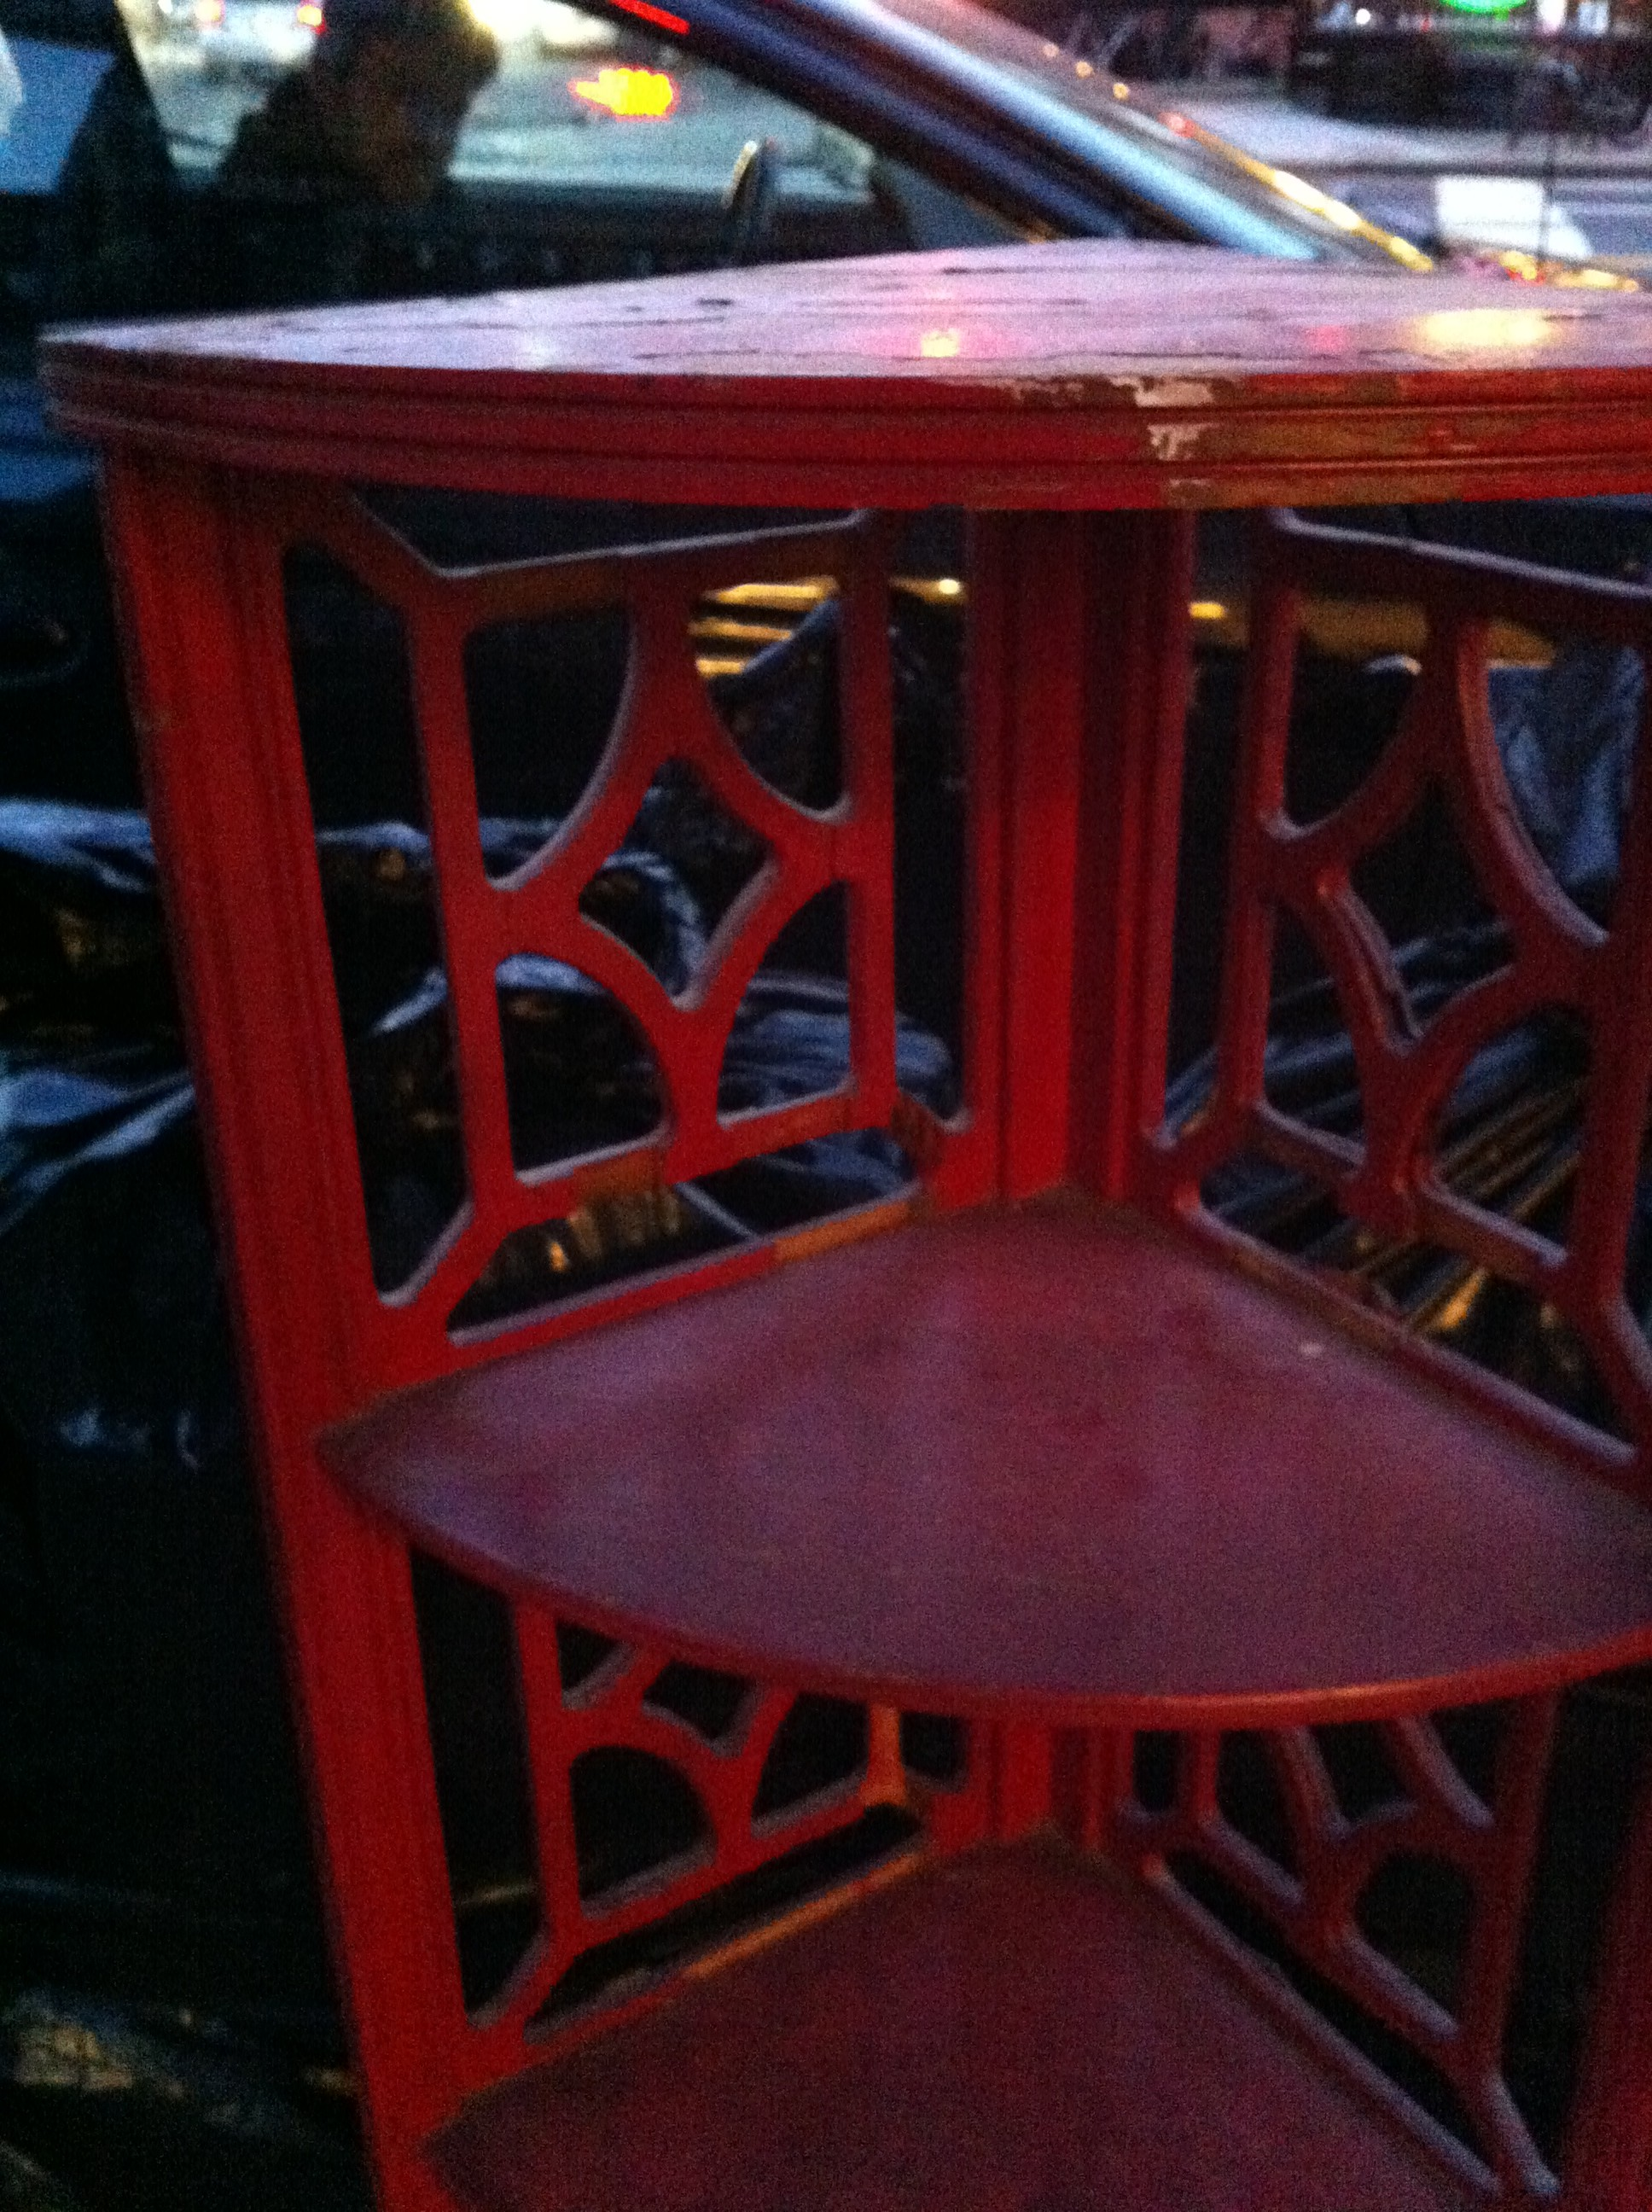 A close up shot of the red corner shelf unit left out on NYC street